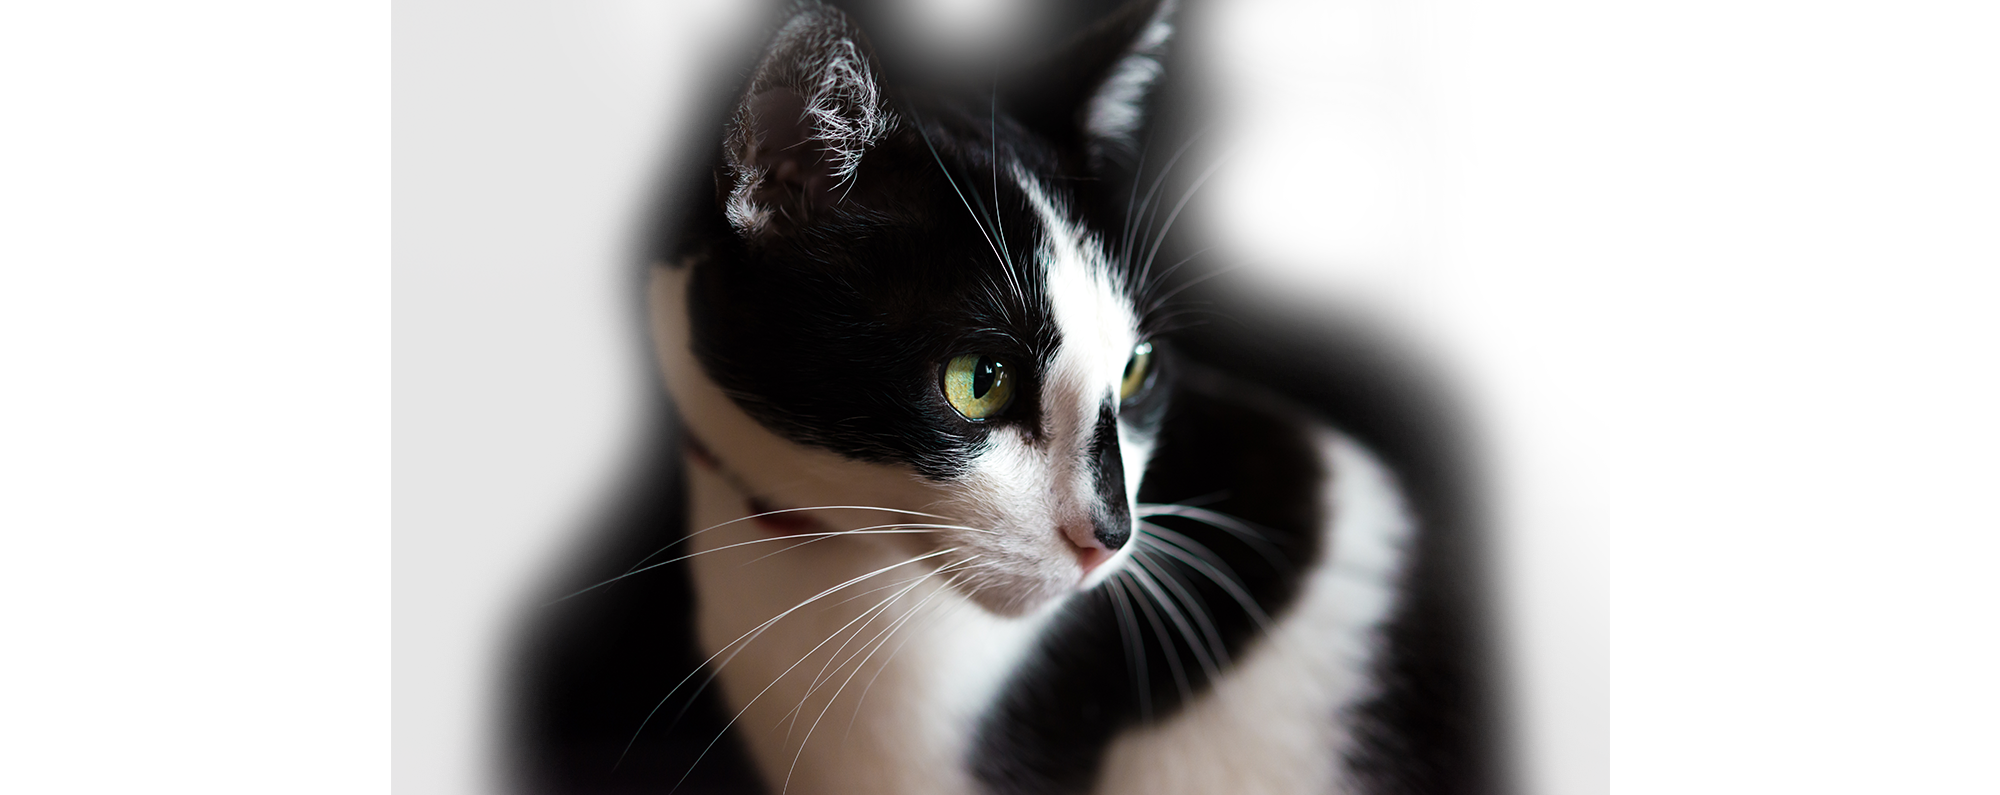 An image of a black and white cat.